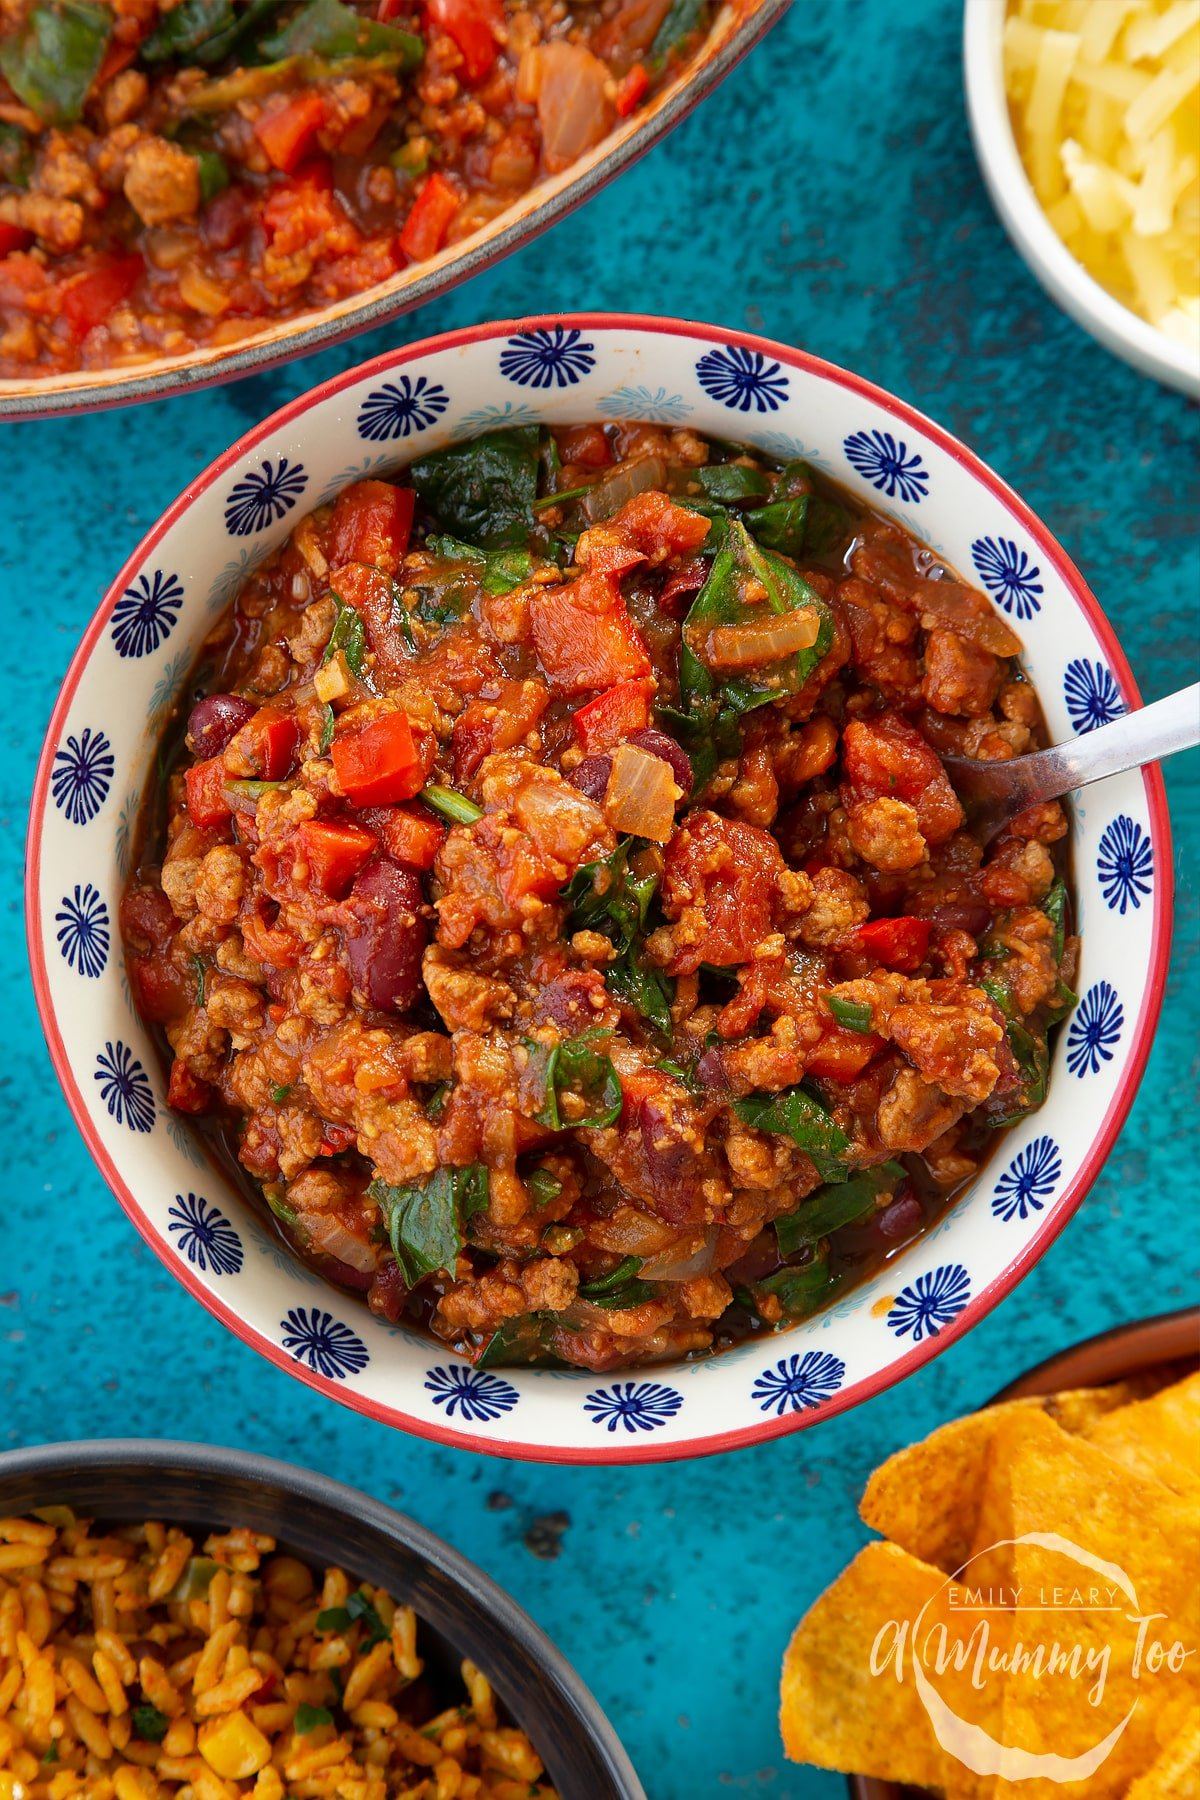 Vegetarian mince chilli in a bowl. A fork is in the bowl. Bowls containing tortilla chips, grated cheese and spicy rice are also shown.